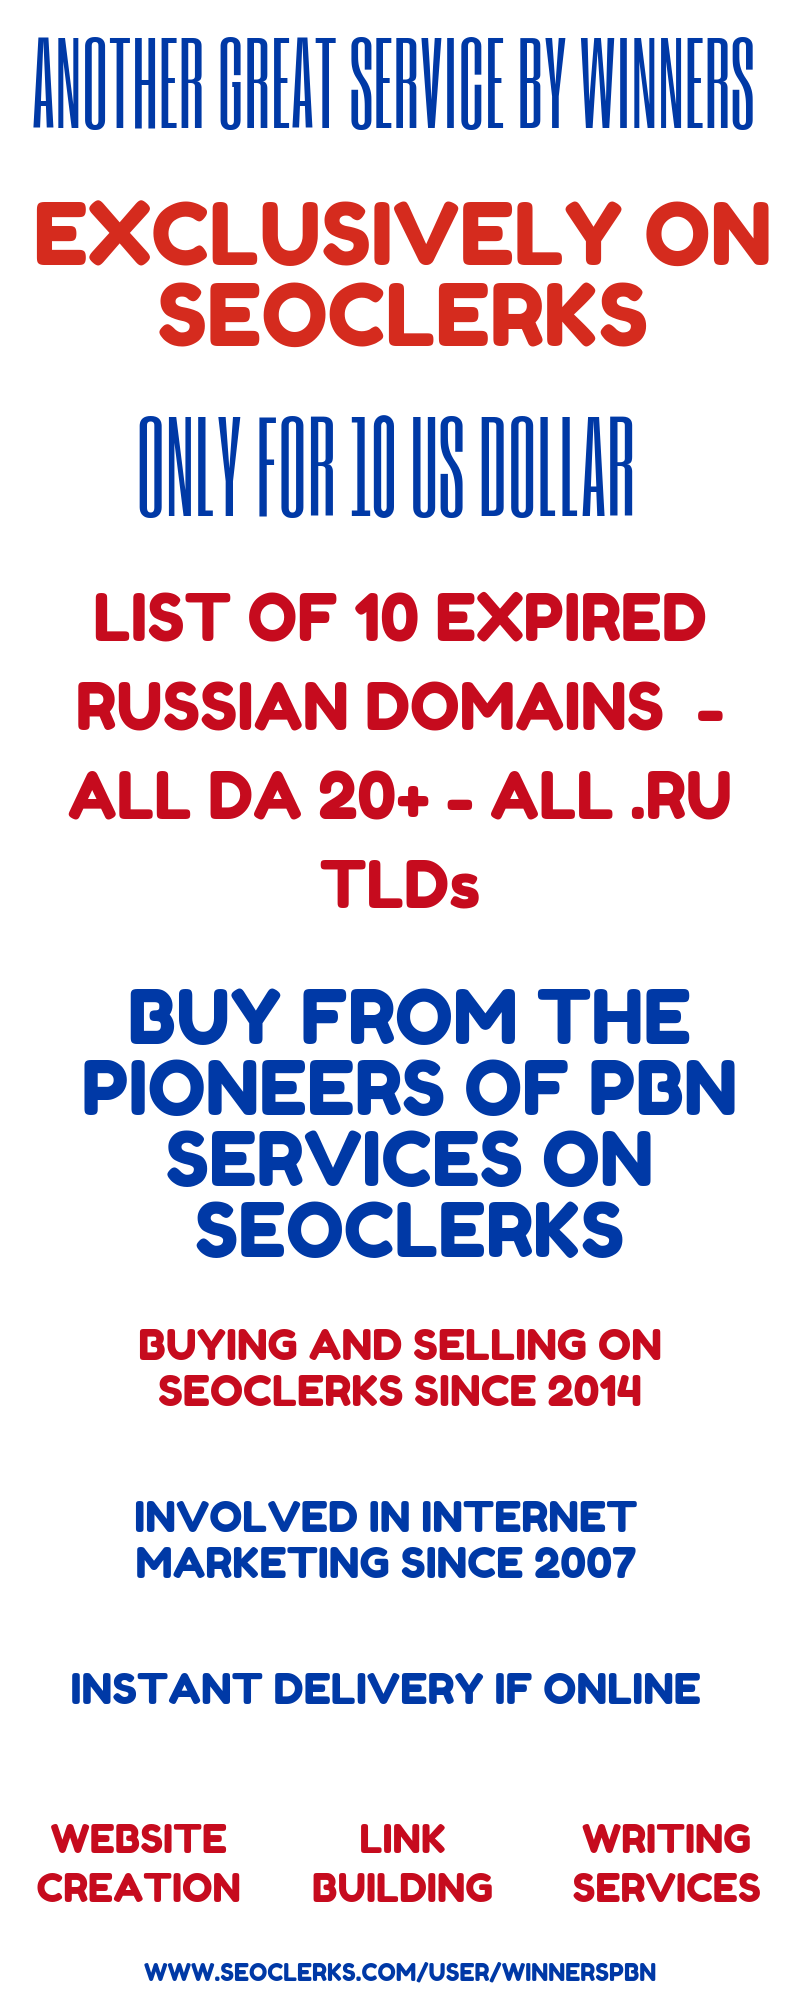 List of 10 Expired Russian Domains - All DA 20+ - All  RU TLDs for $10